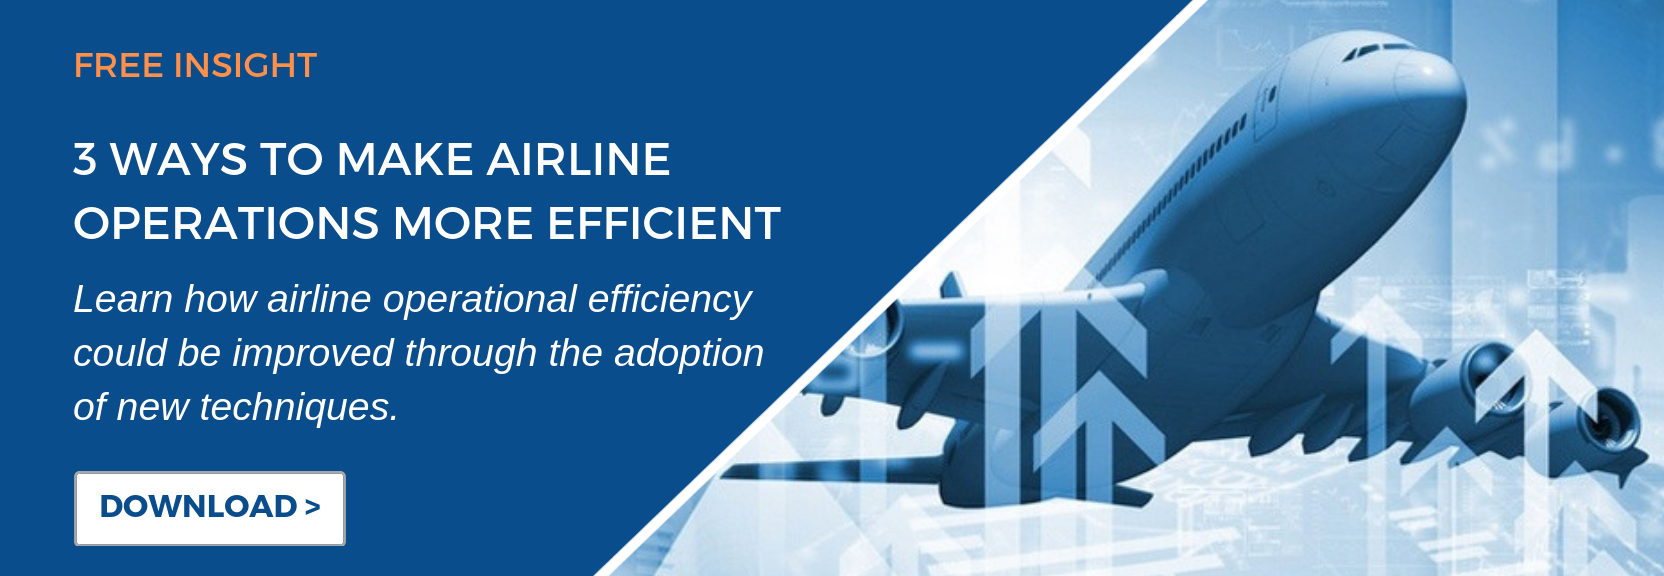 Learn the three ways that airline operational efficiency could be improved